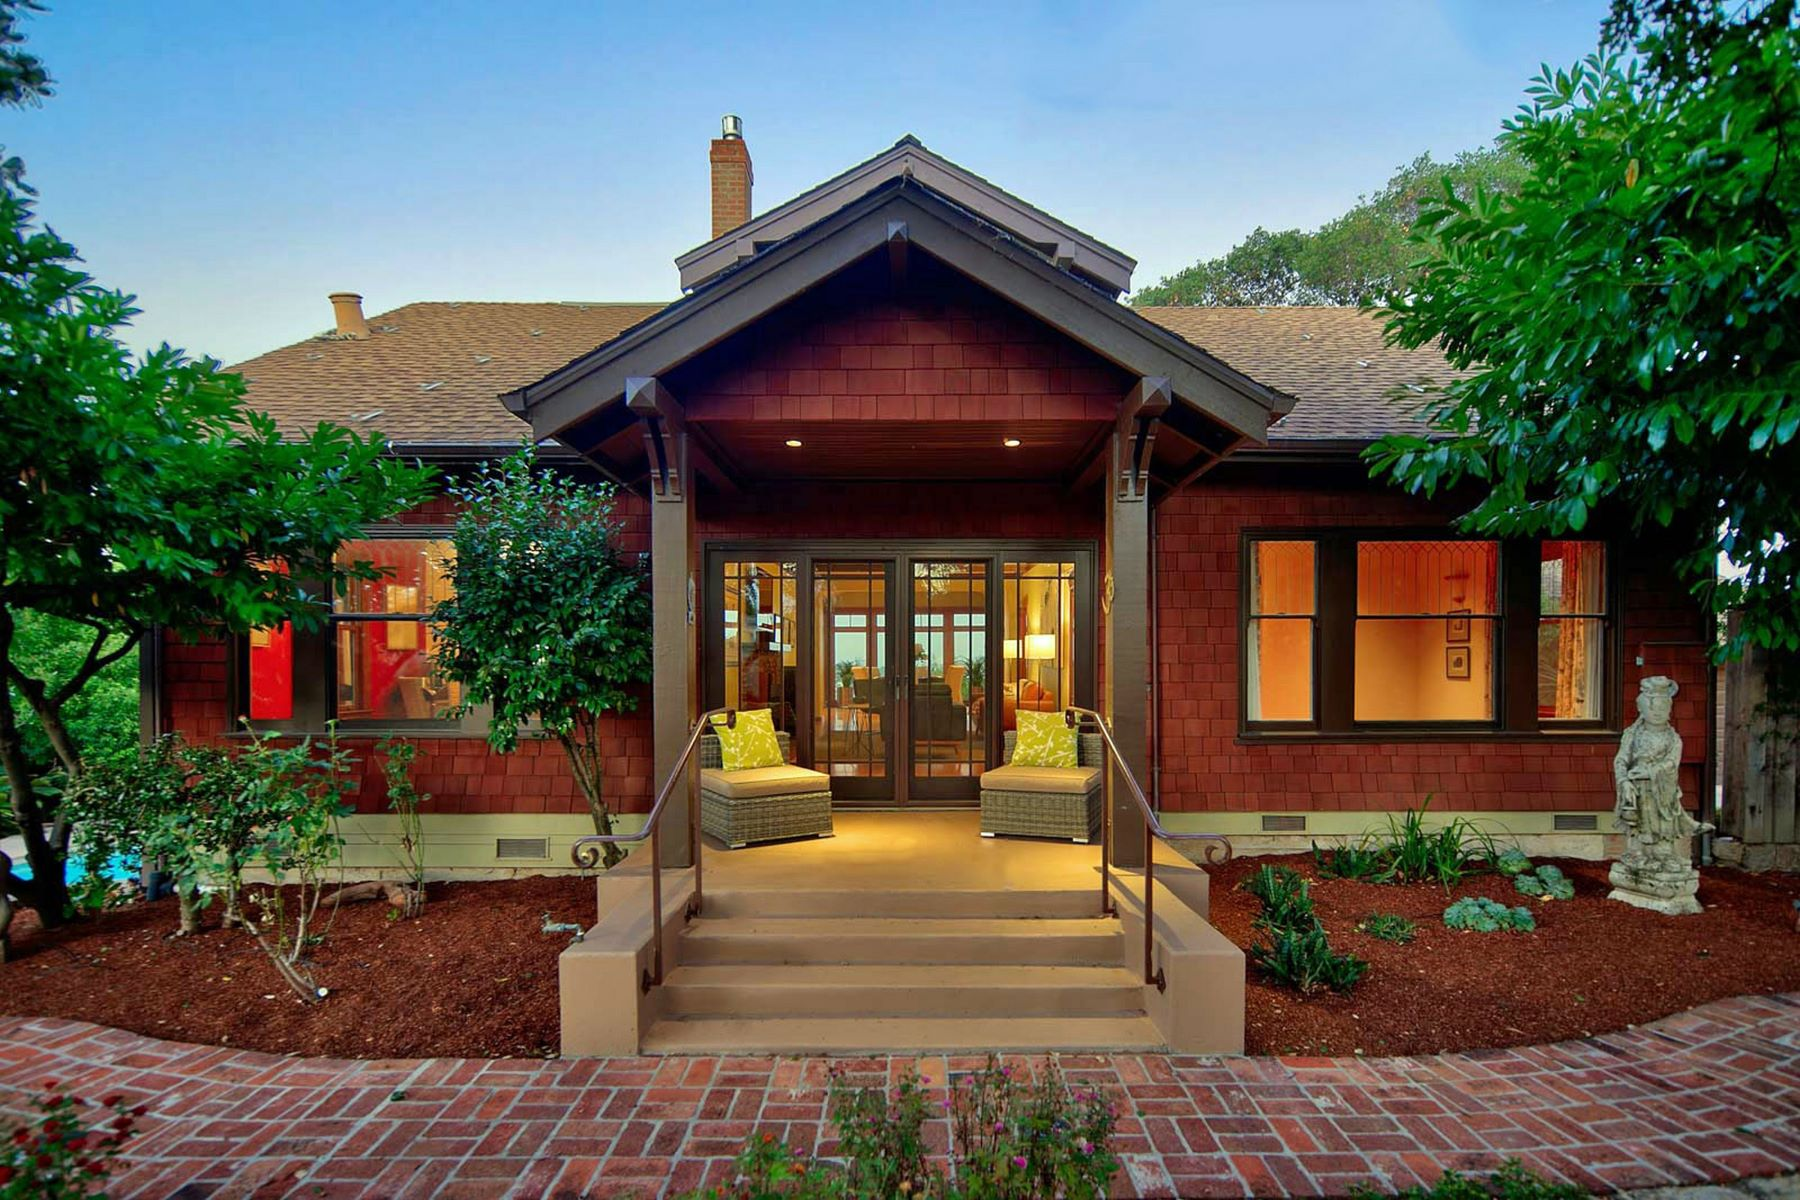 Single Family Homes for Sale at Historic Craftsman With Captivating Views of the Bay and the Richmond-San Rafael 204 Southern Heights Blvd San Rafael, California 94901 United States